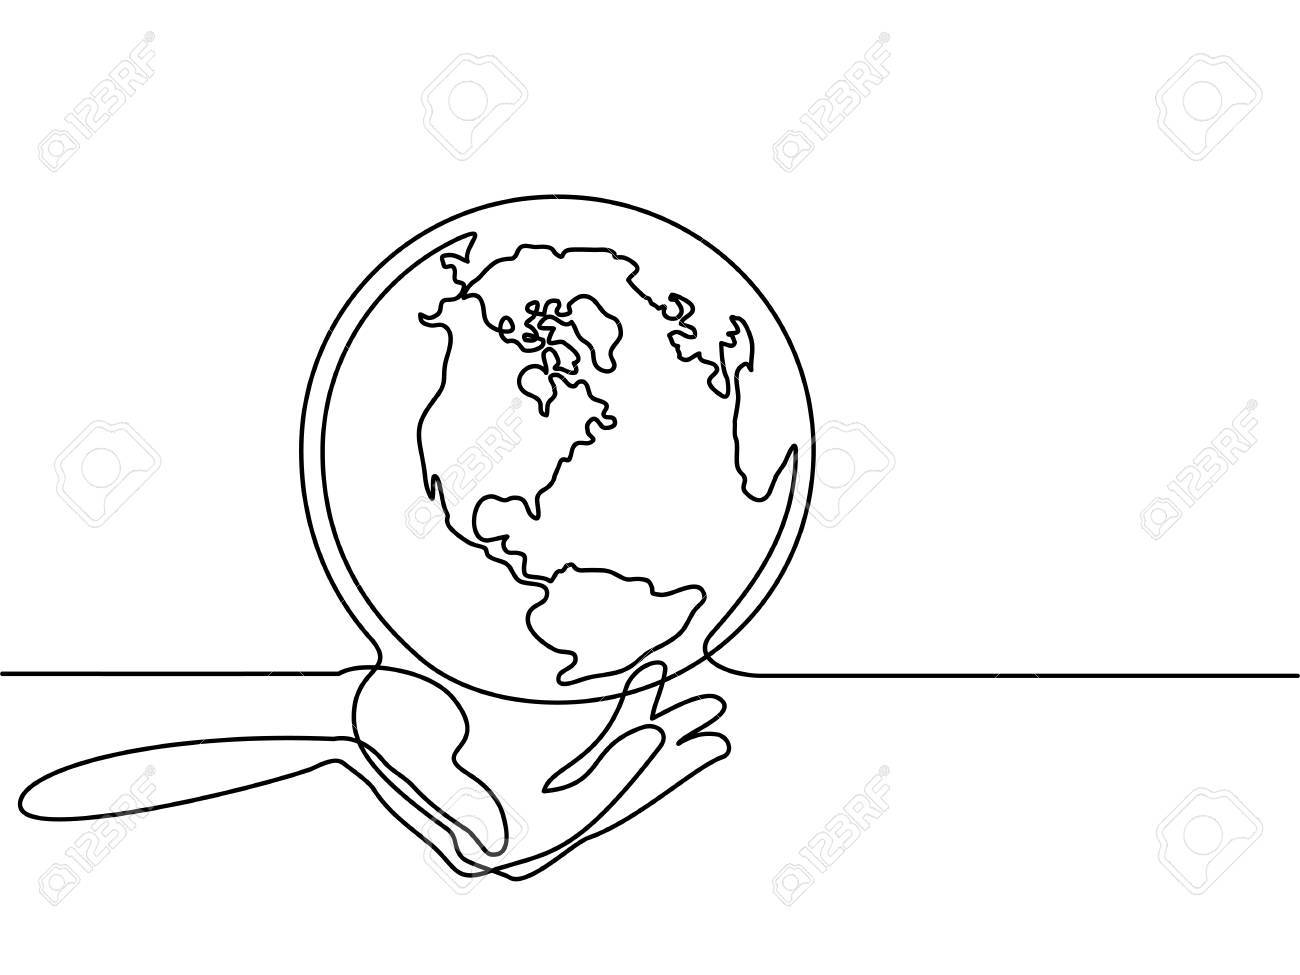 1300x975 Continuous Line Drawing. Globe Of The Earth In Human Hands. Map